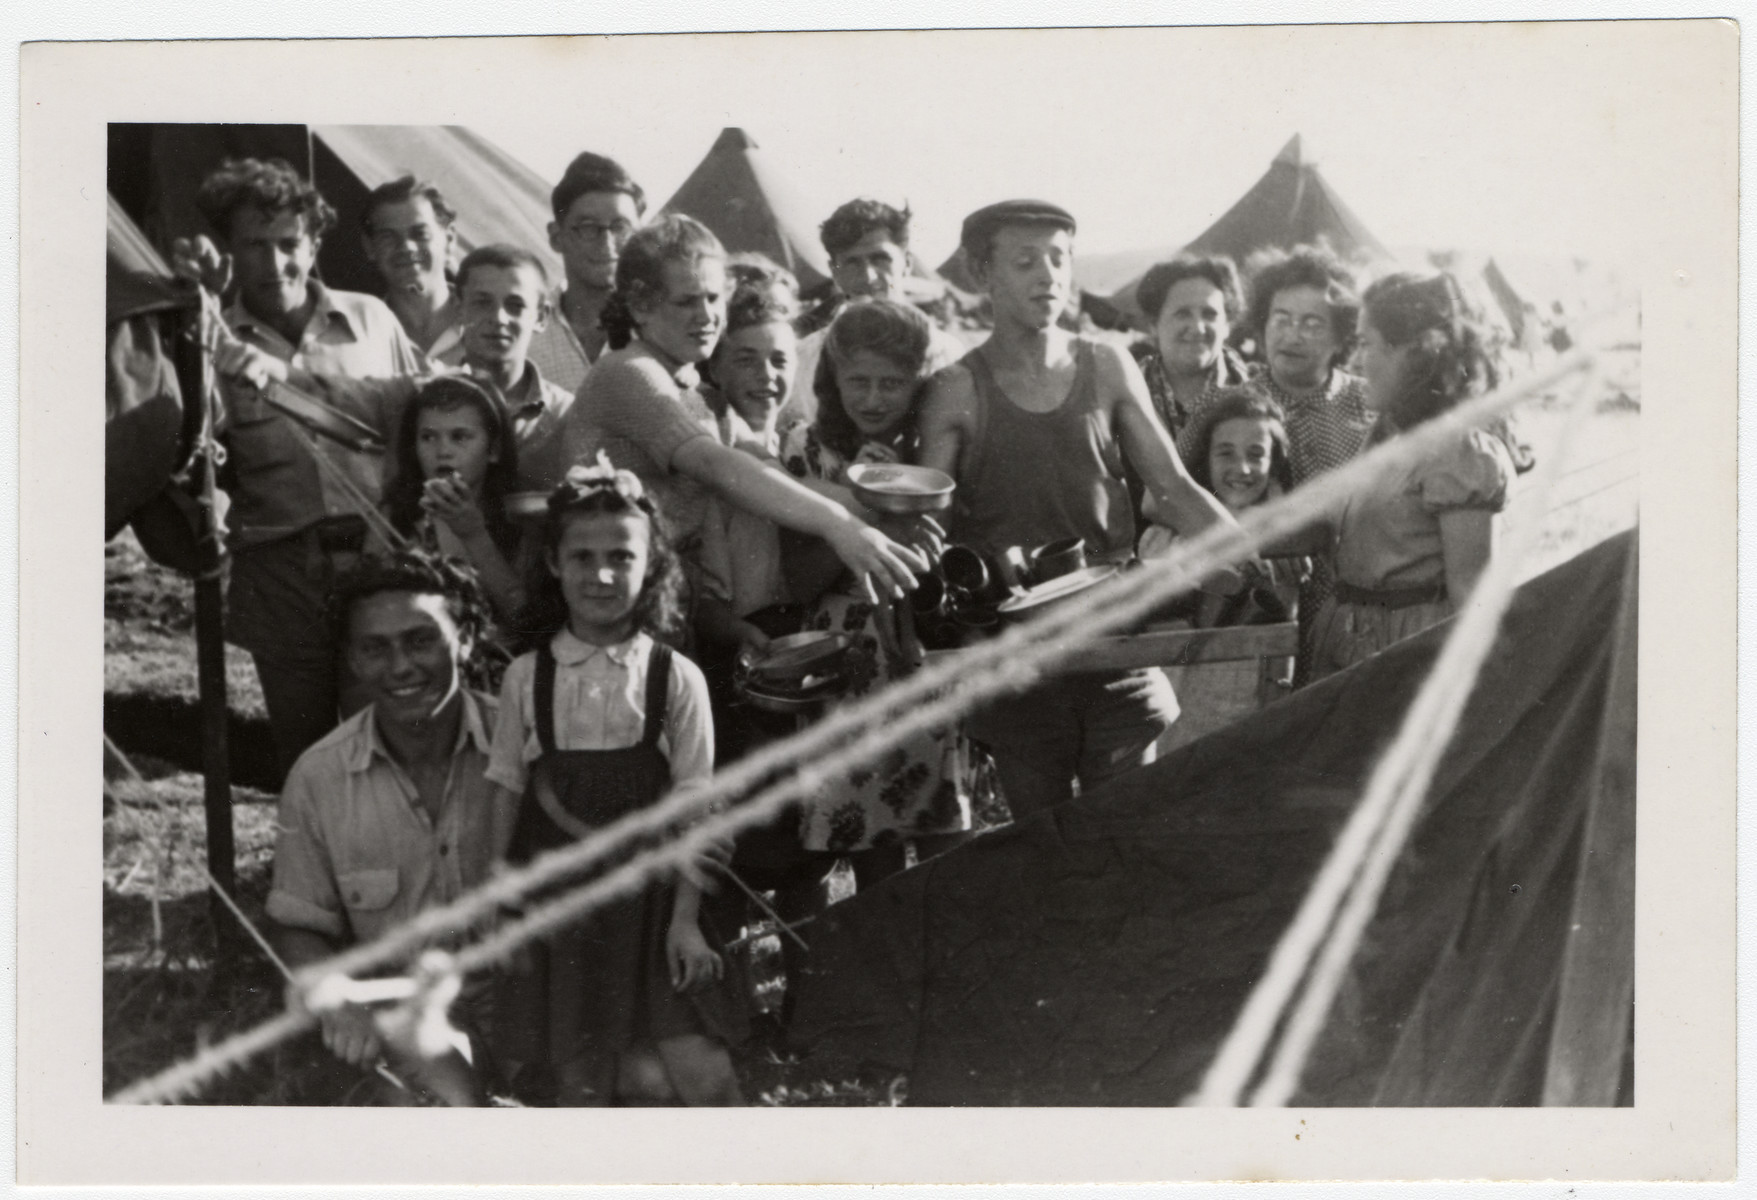 Jewish displaced persons pose outside tents [probably in Cyprus].